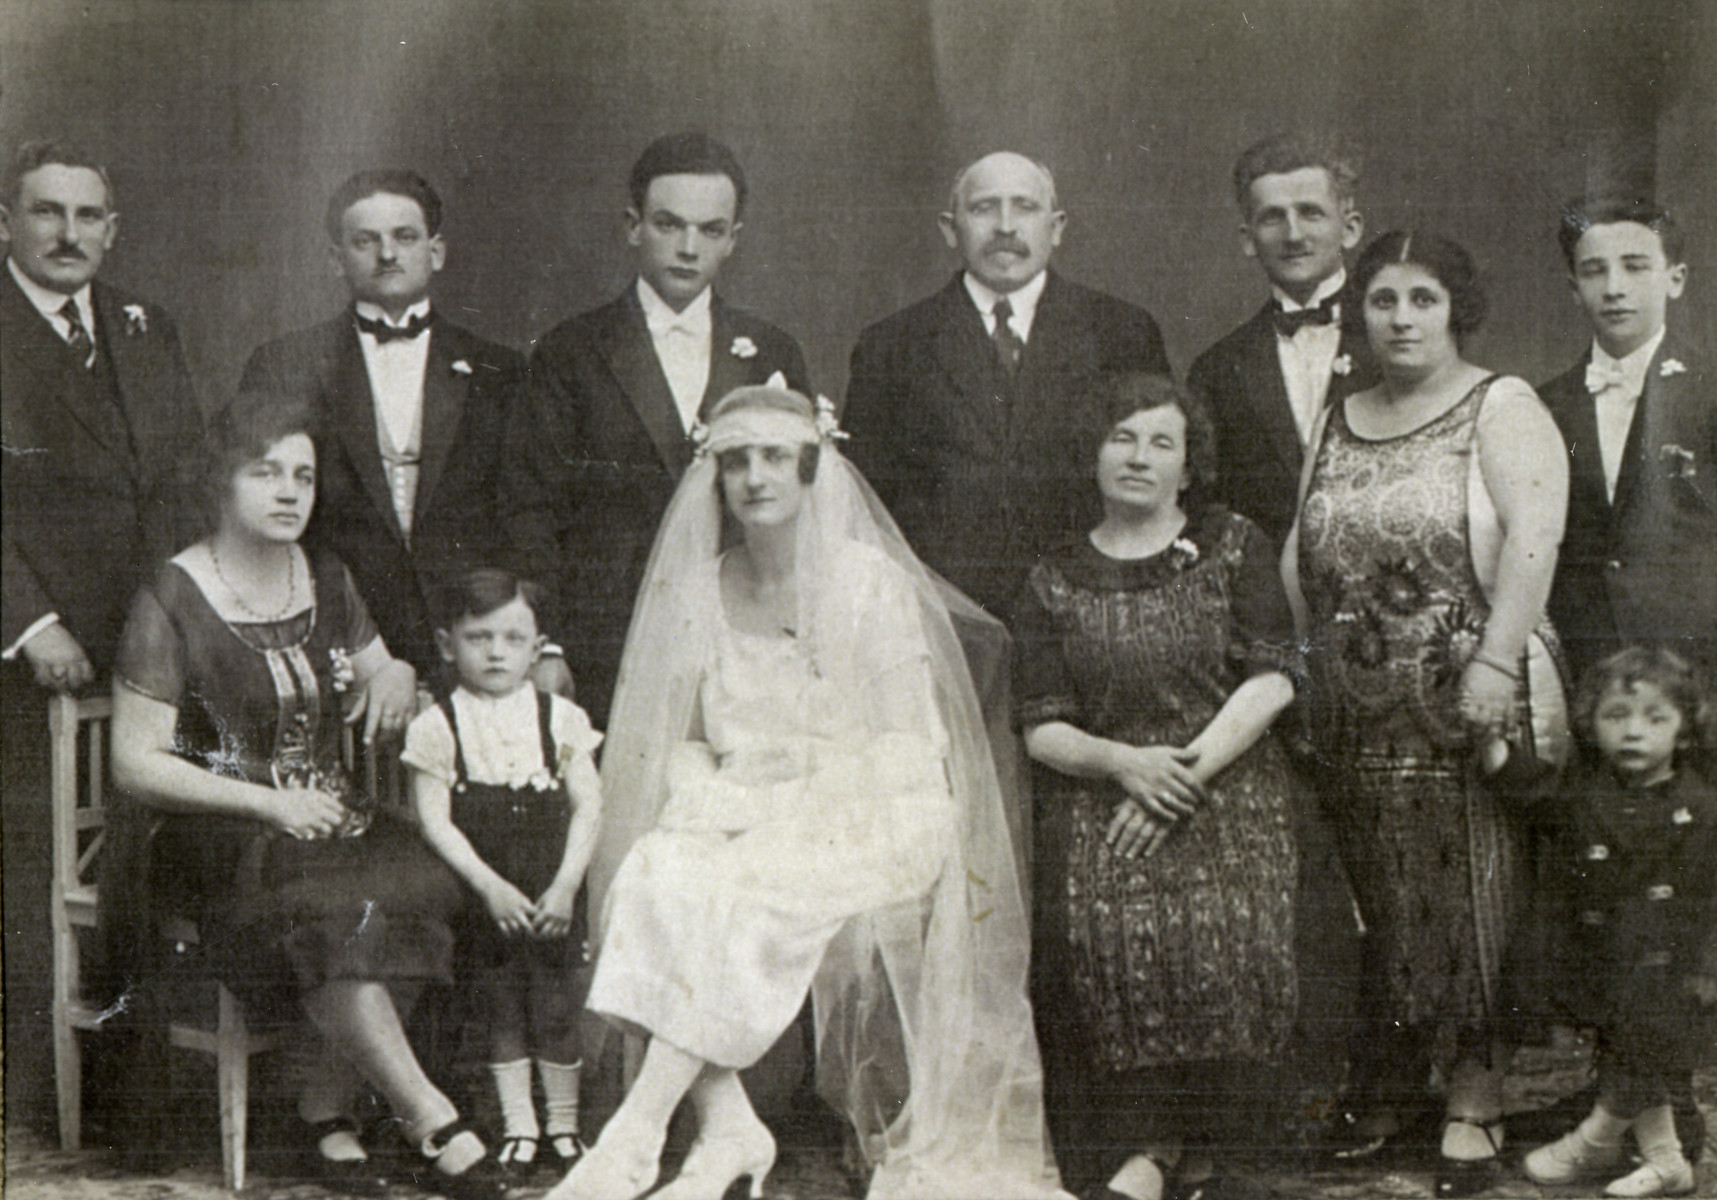 Wedding of Natan Zeidenbach and Mathilda Herscovici.  Back row: Teichberg (far left) survived, Bernard Herscovici (3rd from the right) perished in Auschwitz, Max Herscovici (2nd from the right) survived and after the  war established himself in Brussels with his wife, Anoutsa Grimberg.    Front row: Shimon Herscovici (2nd from the left) worked two years in the revier in Auschwitz. He was a medical student.  Chava Herscovici (right of the bride, sitting) perished in Auschwitz with her husband Bernard (standing at her left shoulder), Anutsa Greenberg Herscovici (2nd from the right) survived.